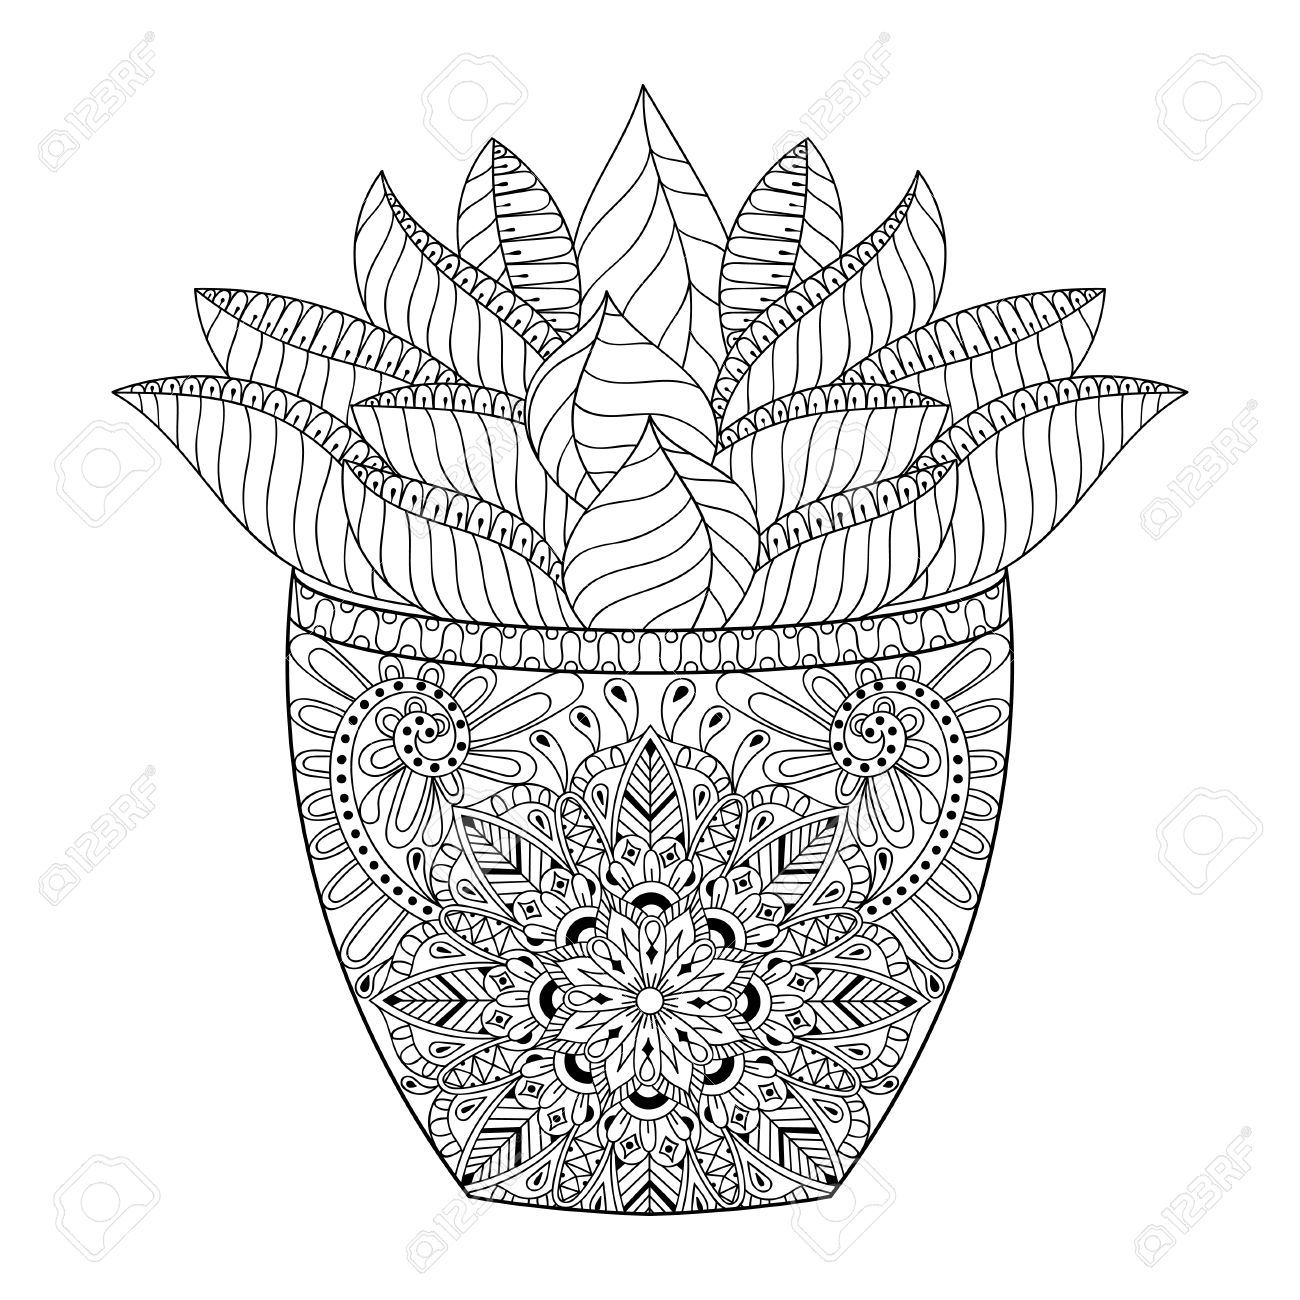 Desert Coloring Pages - GetColoringPages.com | 1300x1300